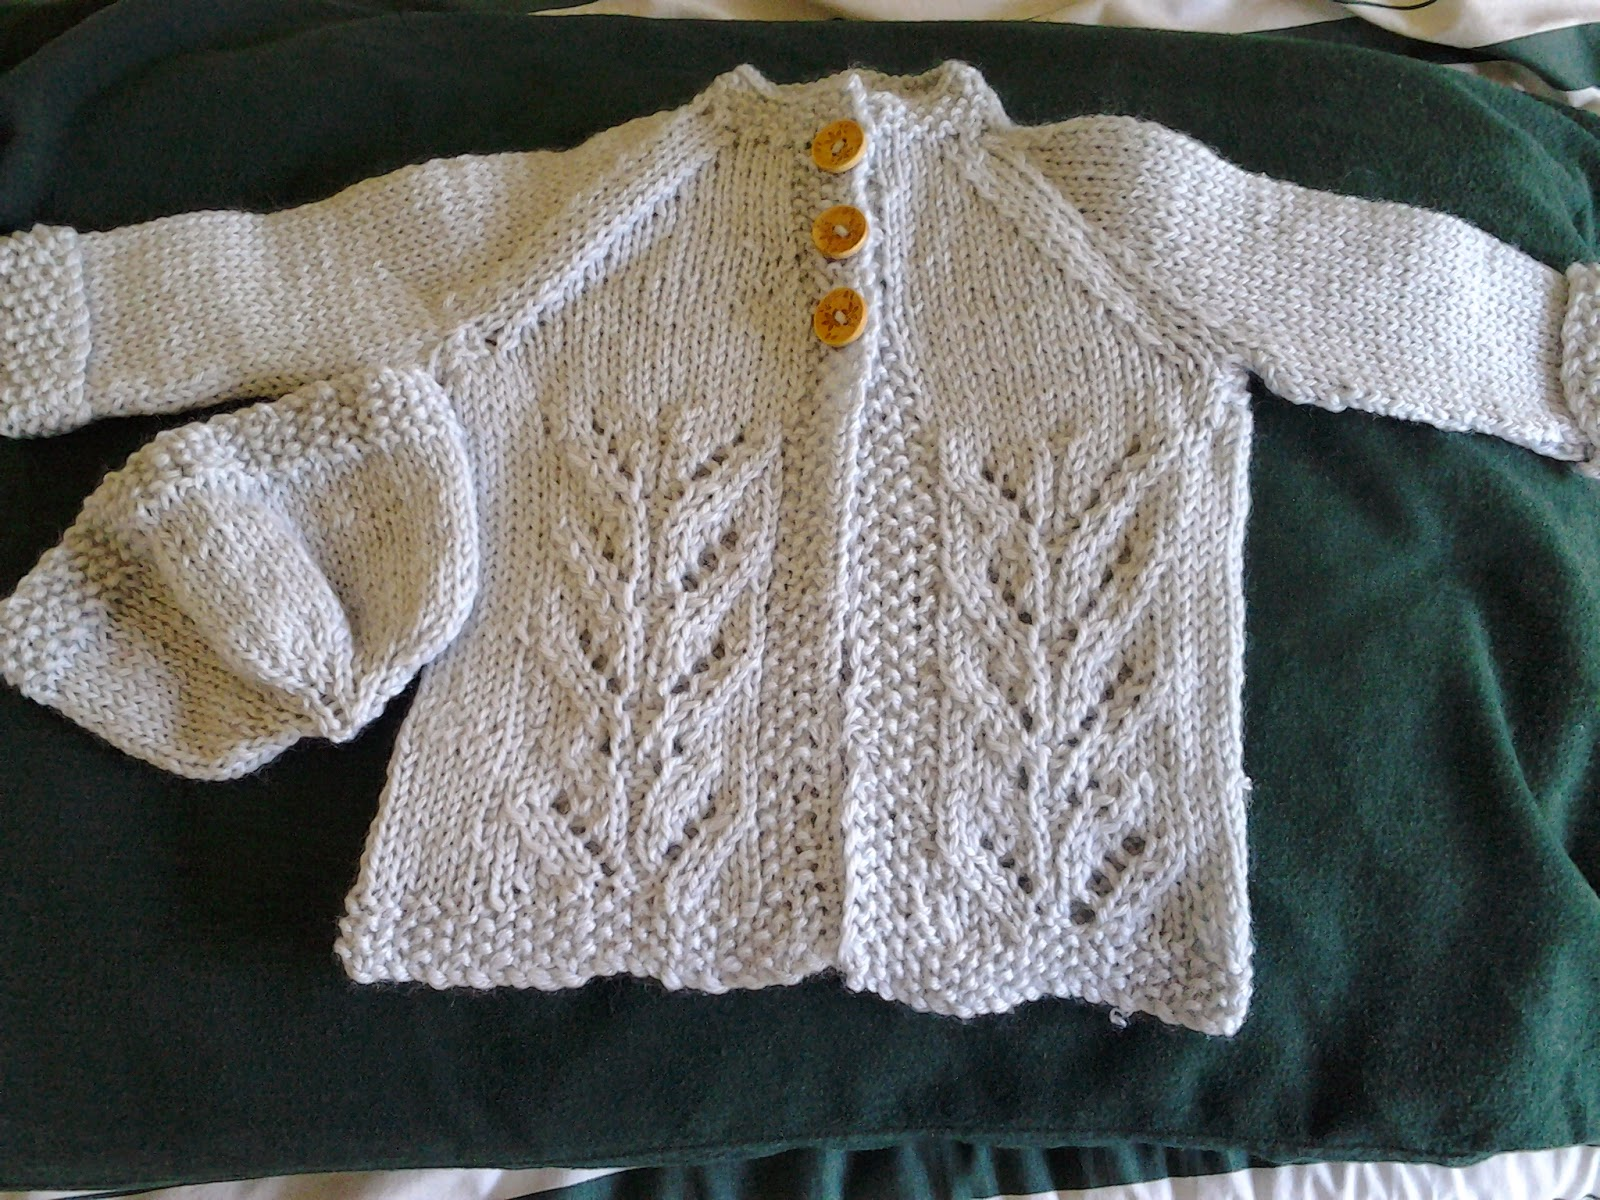 Free Knitting Pattern For Raglan Sleeve Baby Cardigan : alankarshilpa: A Free Knitting pattern - Baby Cardigan Raglan from Bottom up.